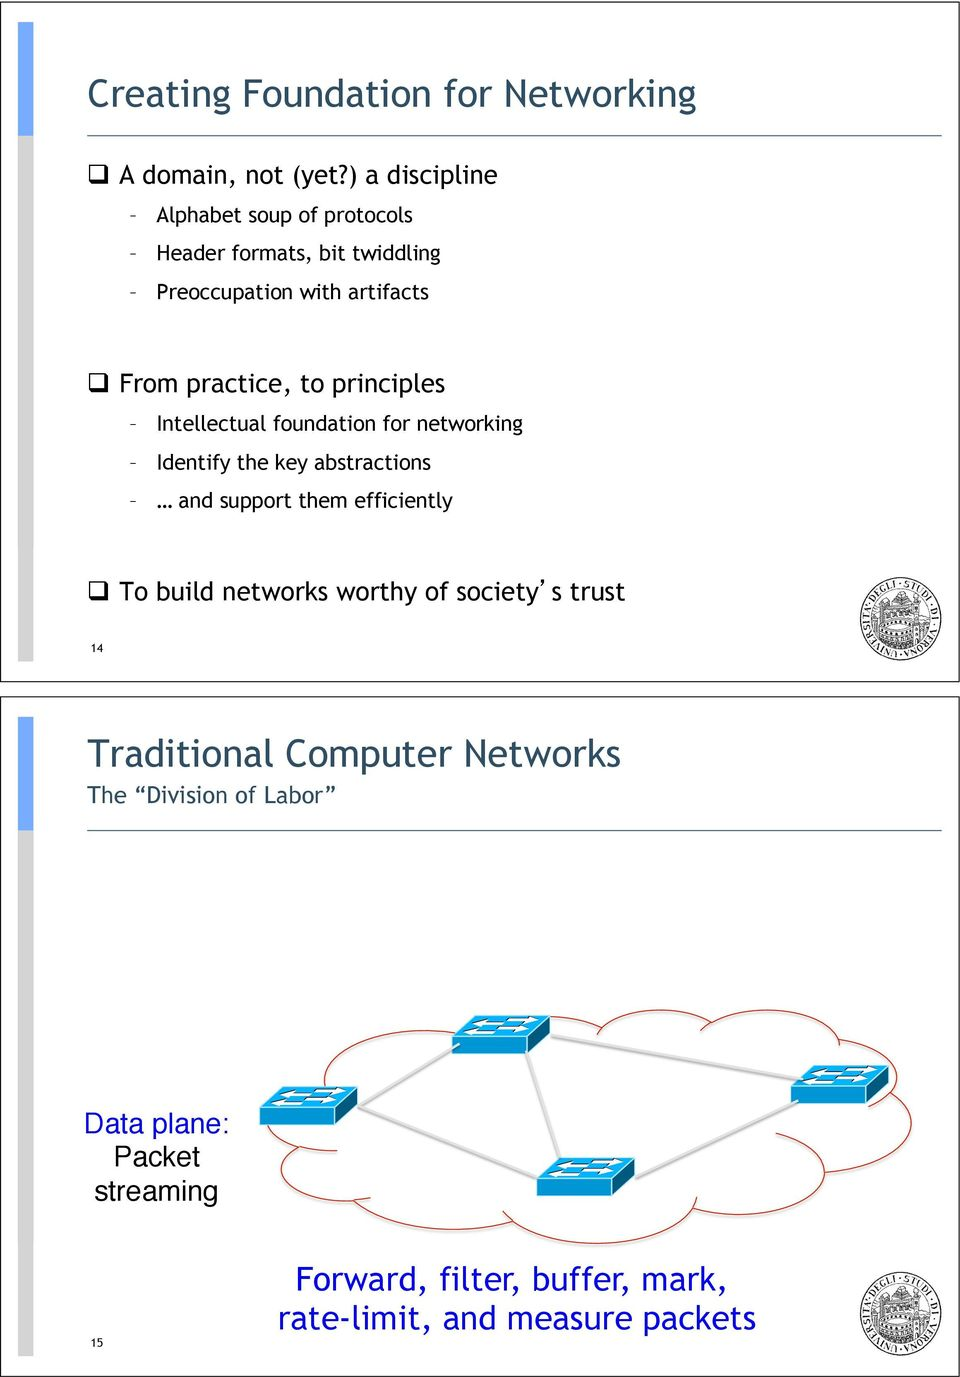 From practice, to principles Intellectual foundation for networking Identify the key abstractions and support them